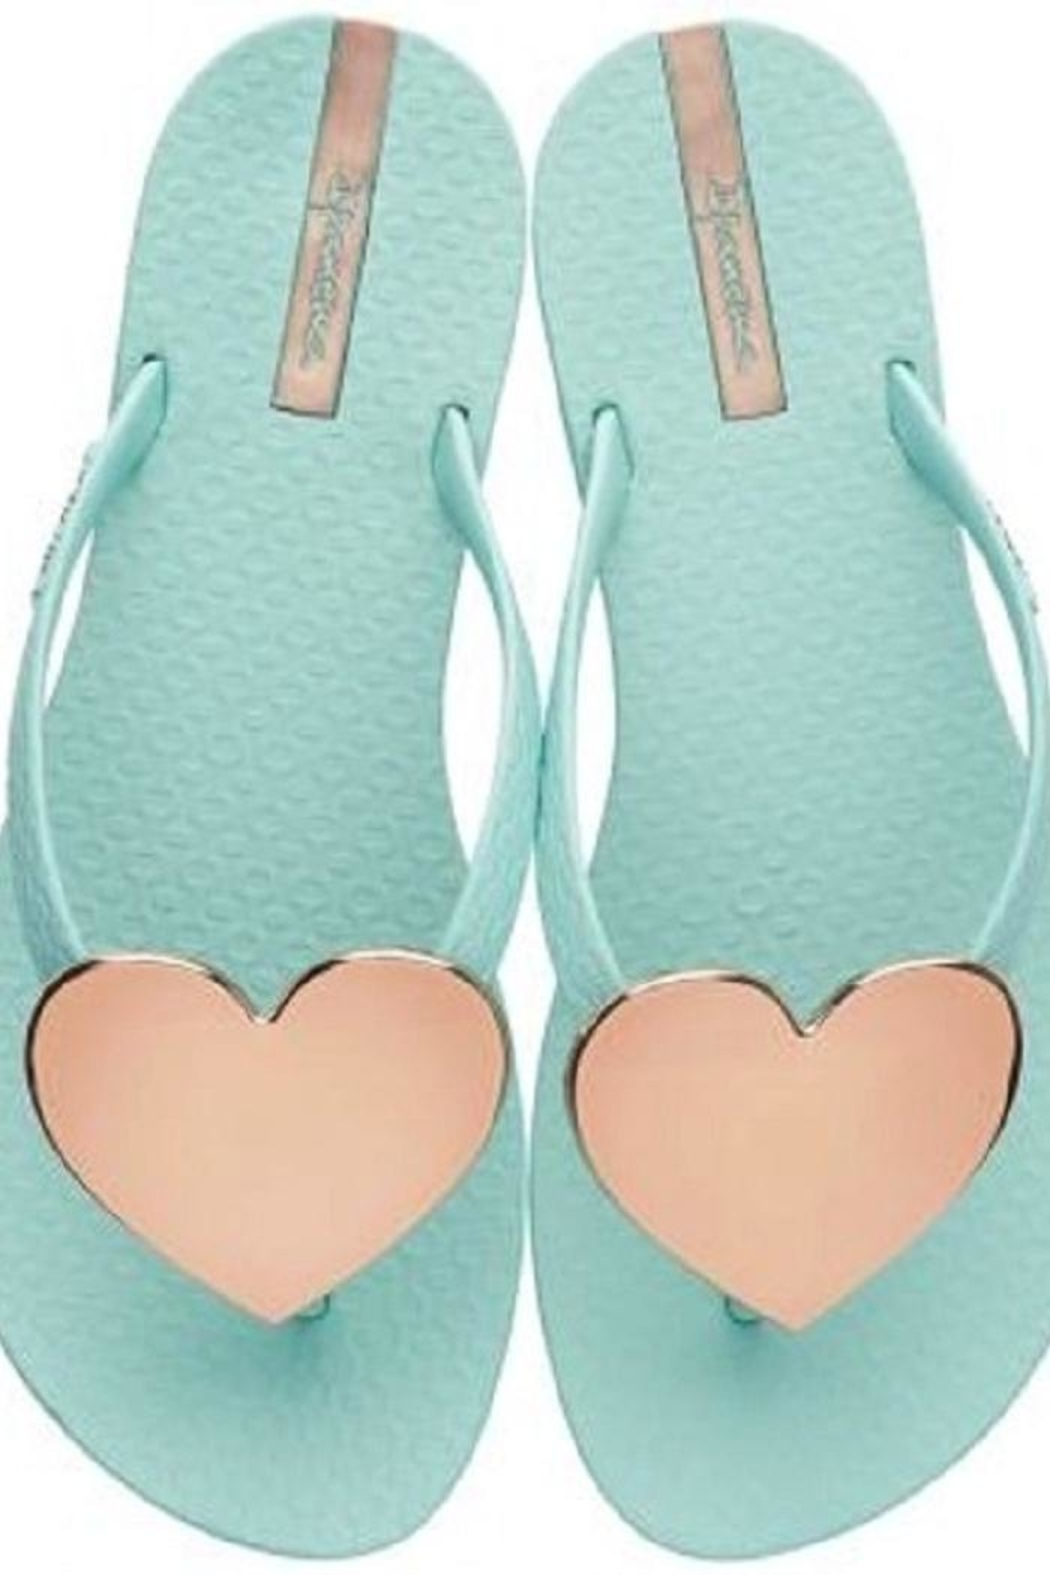 b047164b1 Ipanema Wave Heart Sandals from Miami by Neptunes — Shoptiques